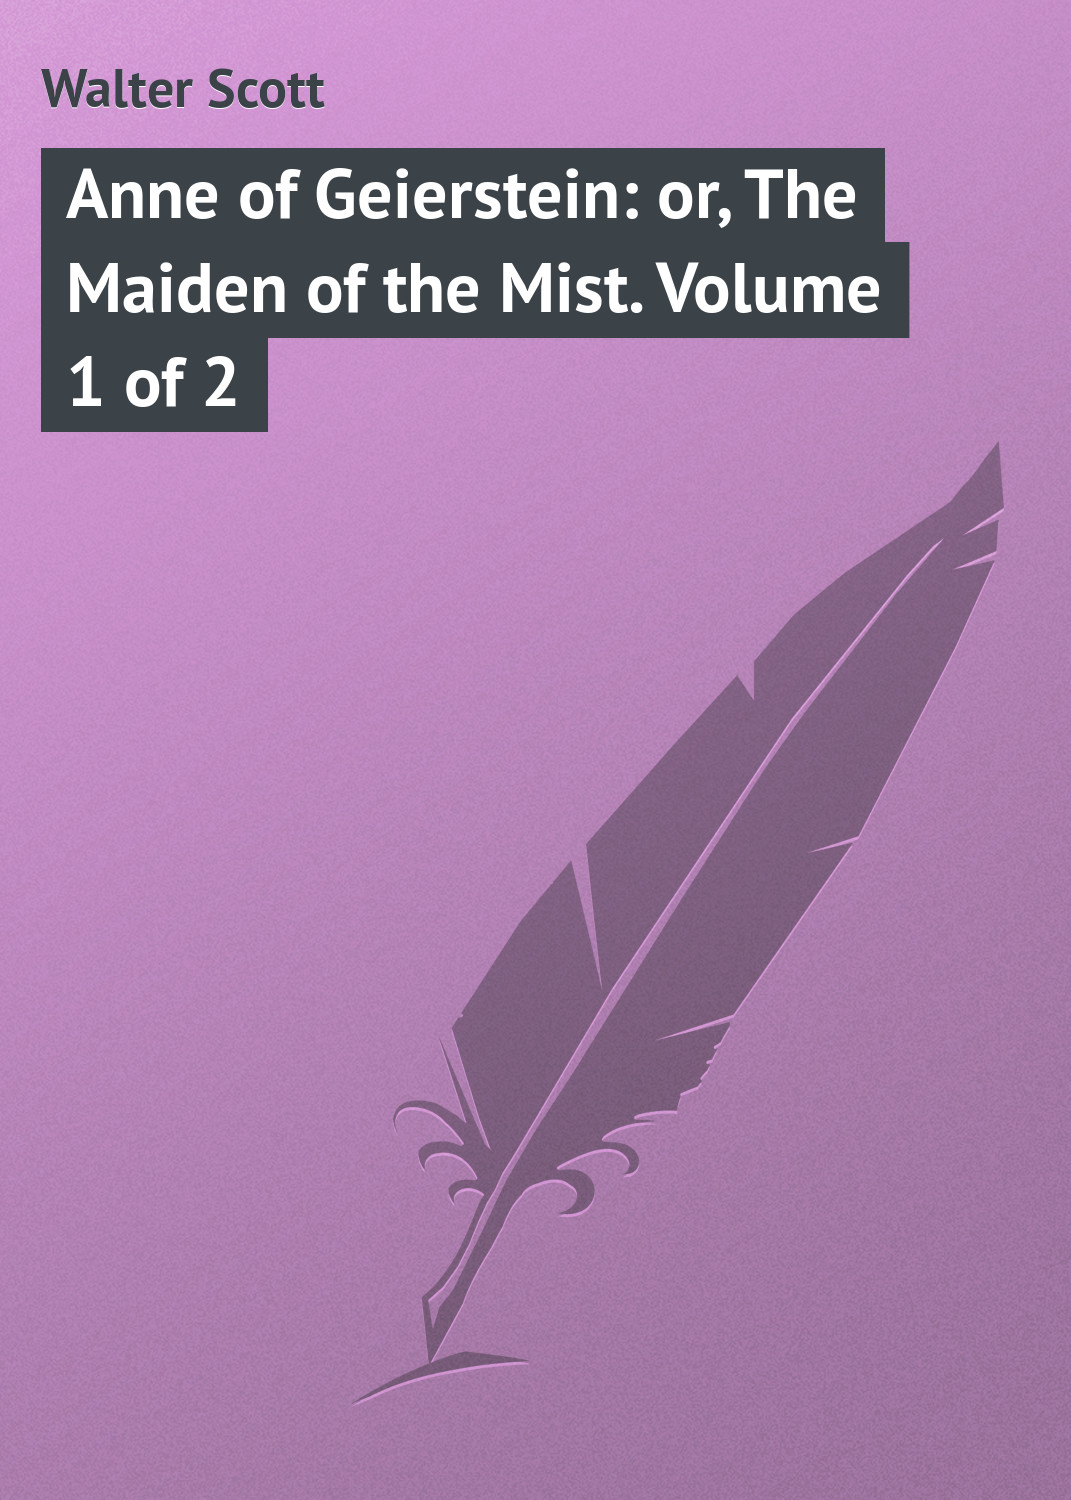 Walter Scott Anne of Geierstein: or, The Maiden of the Mist. Volume 1 of 2 walter scott the history of schotland vol 2